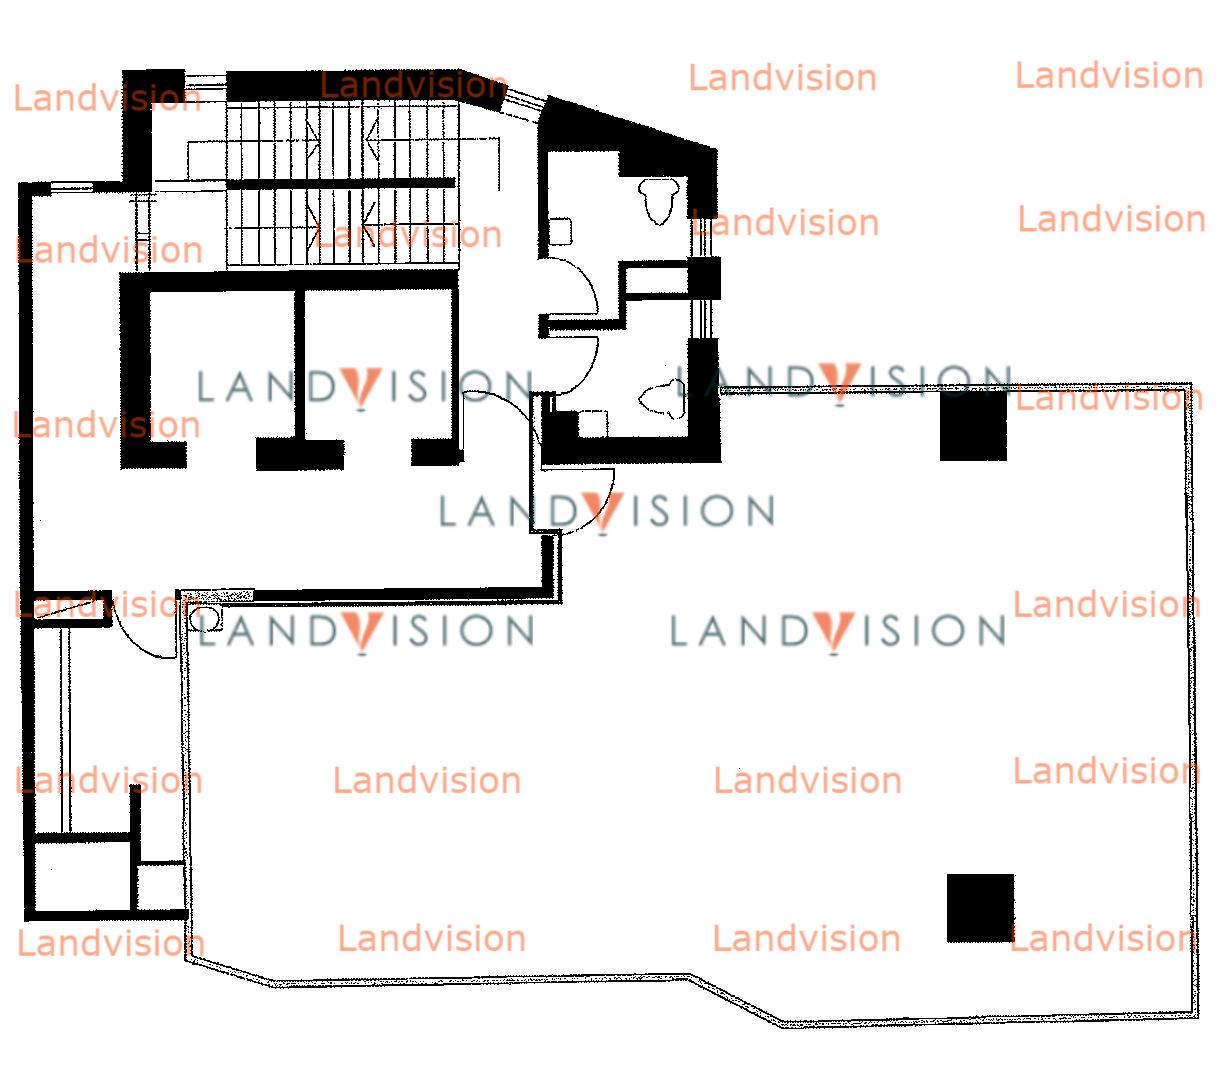 https://www.landvision.com.hk/wp-content/uploads/website/resize/floorplans/000082.JPG